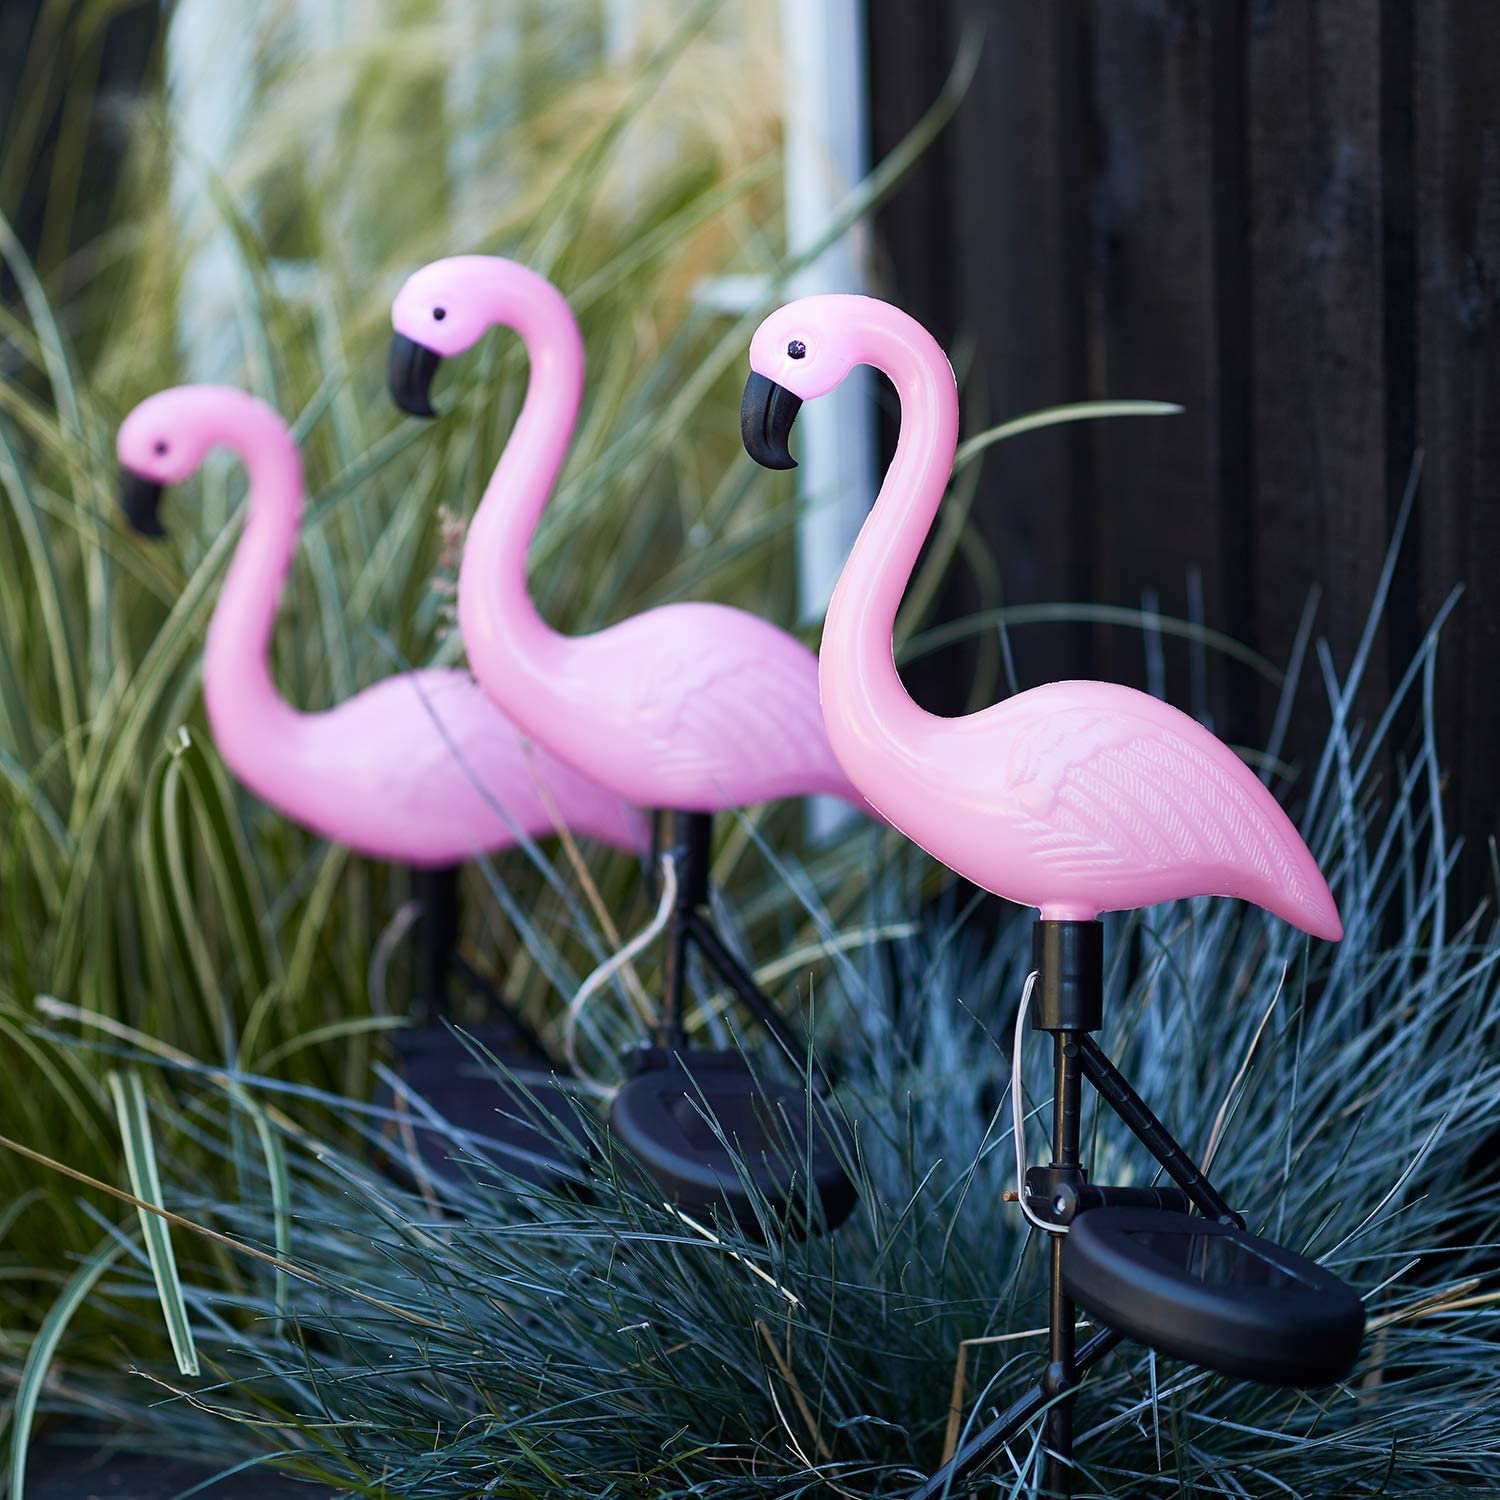 Lights4fun, Inc. Set of 3 Pink Flamingo Solar Powered LED Outdoor Waterproof Garden Pathway Landscape Lights